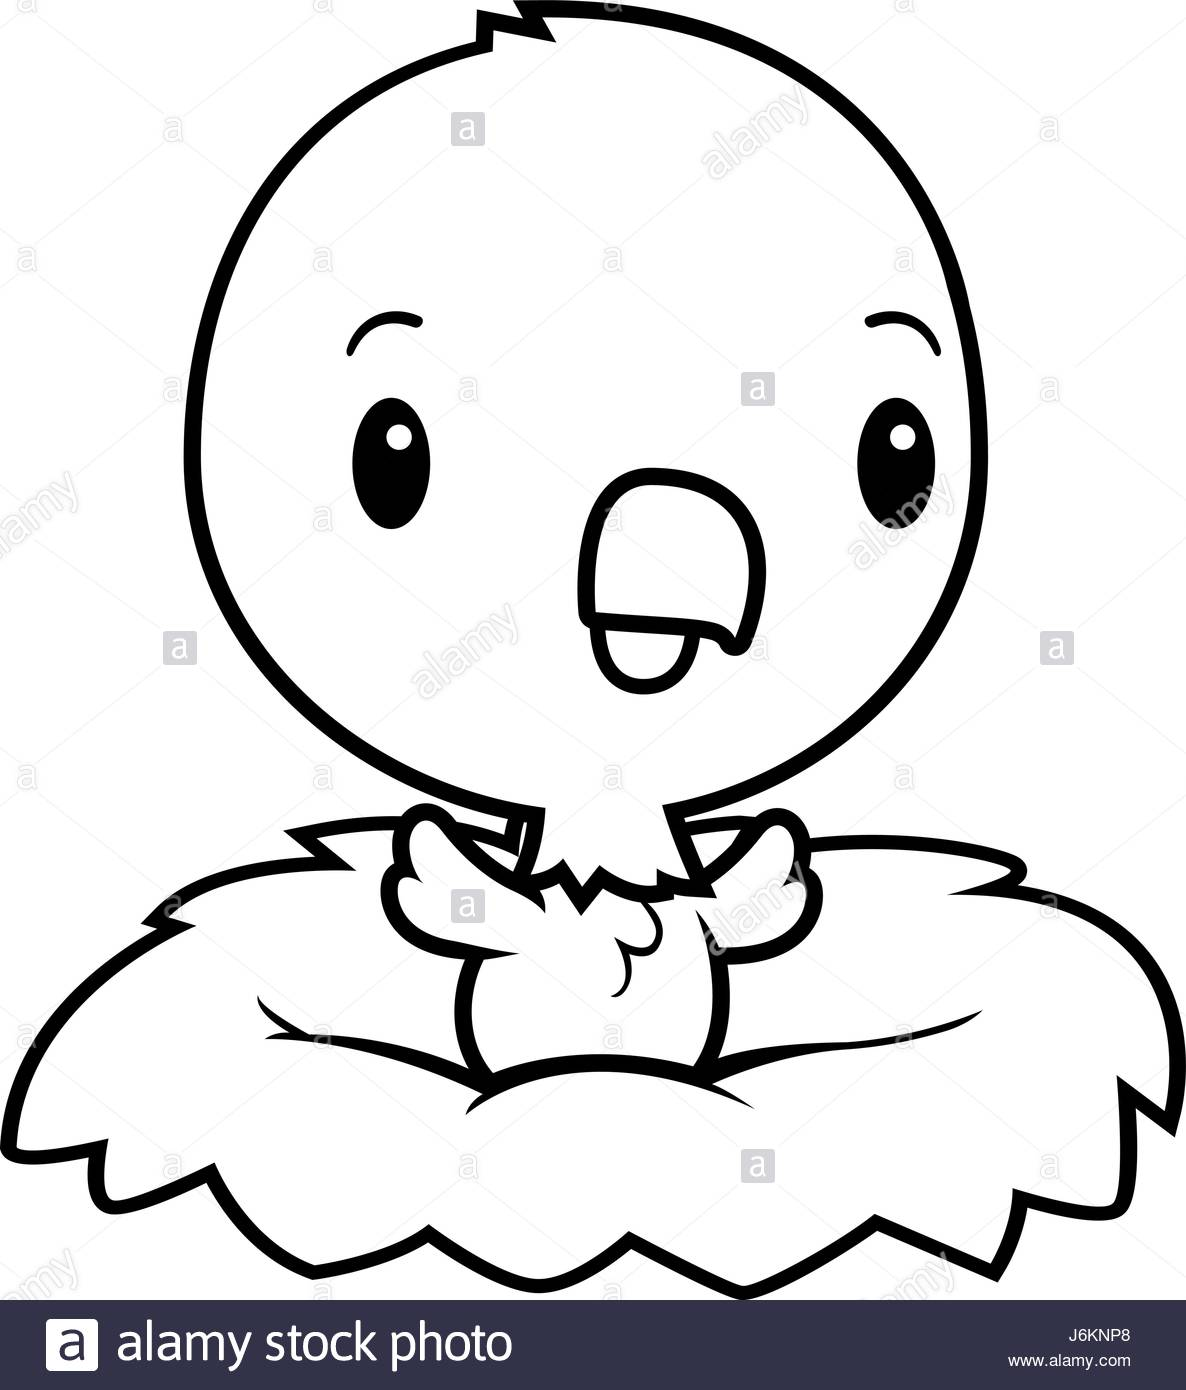 1186x1390 A Cartoon Illustration Of A Baby Eagle In A Nest Stock Vector Art